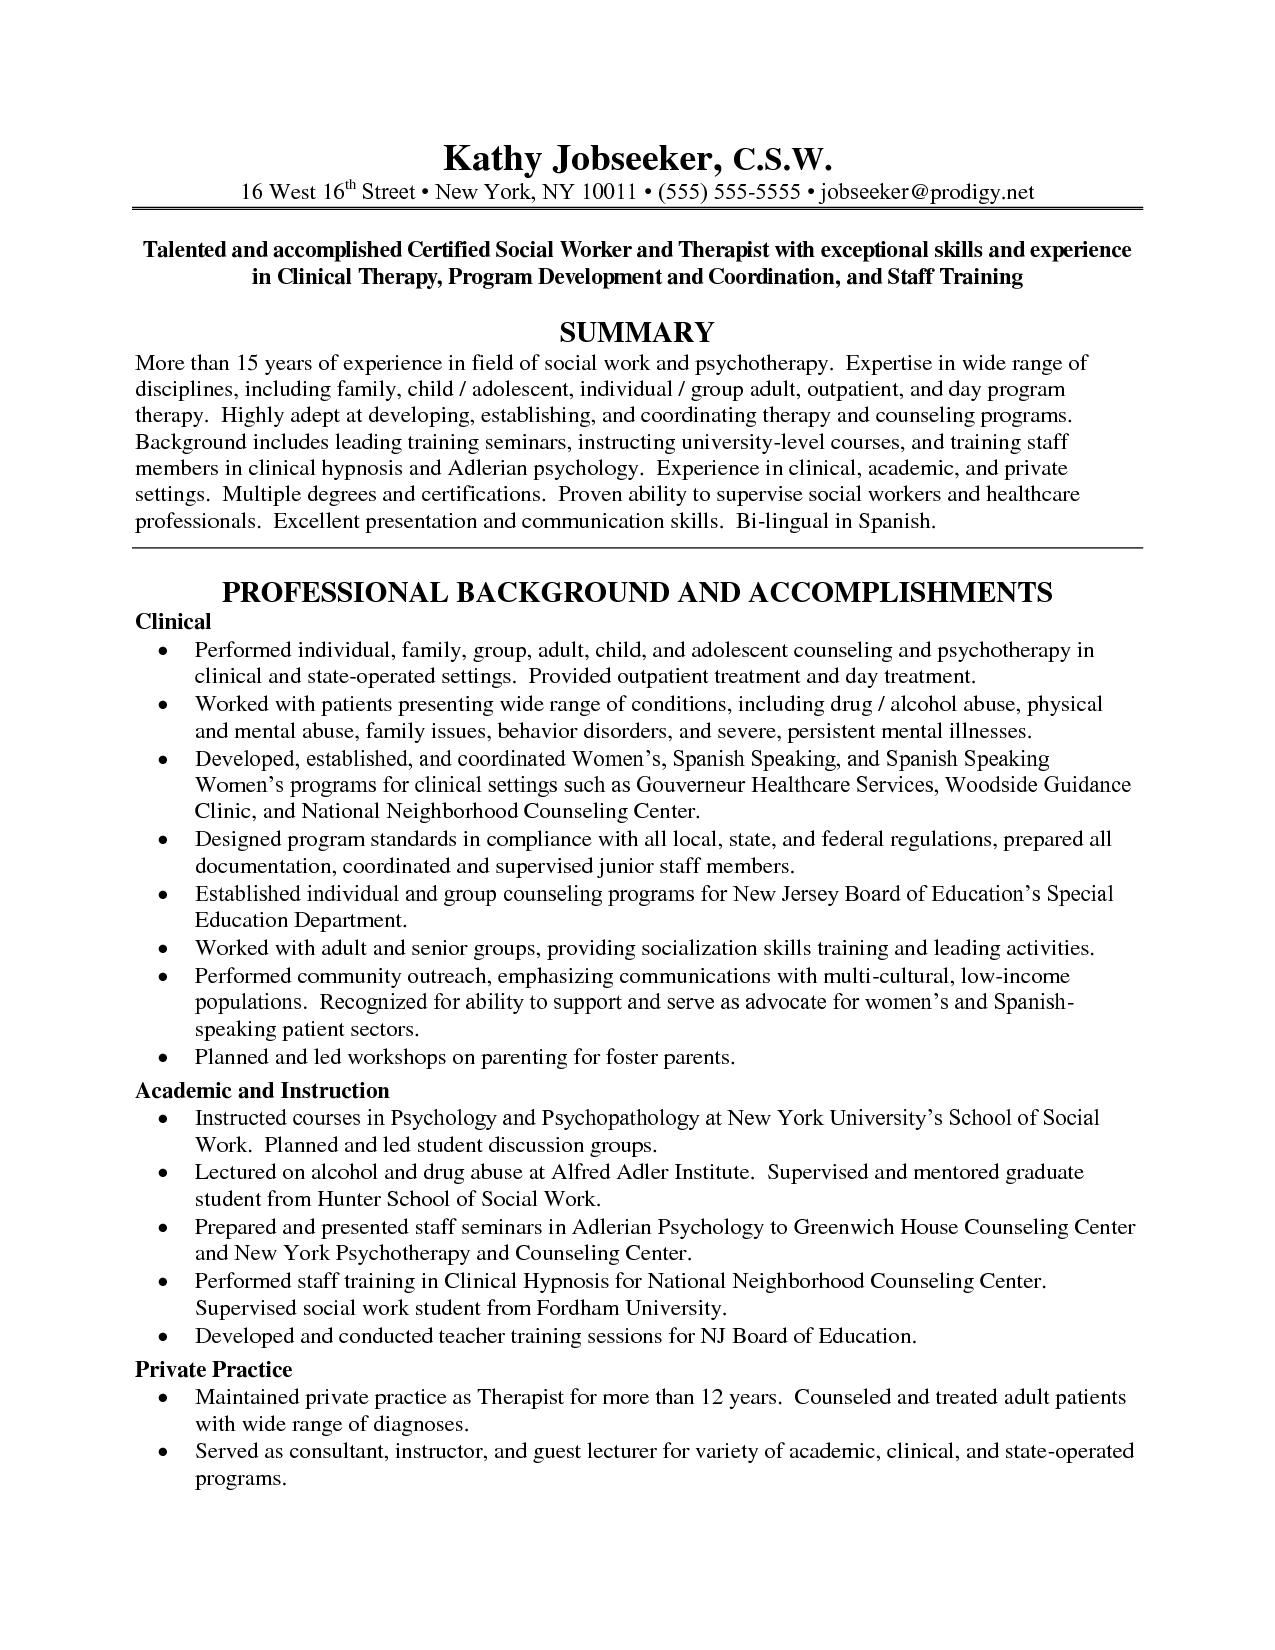 Objective For Offshore Resume Social History Resume Examples Social Work Resume